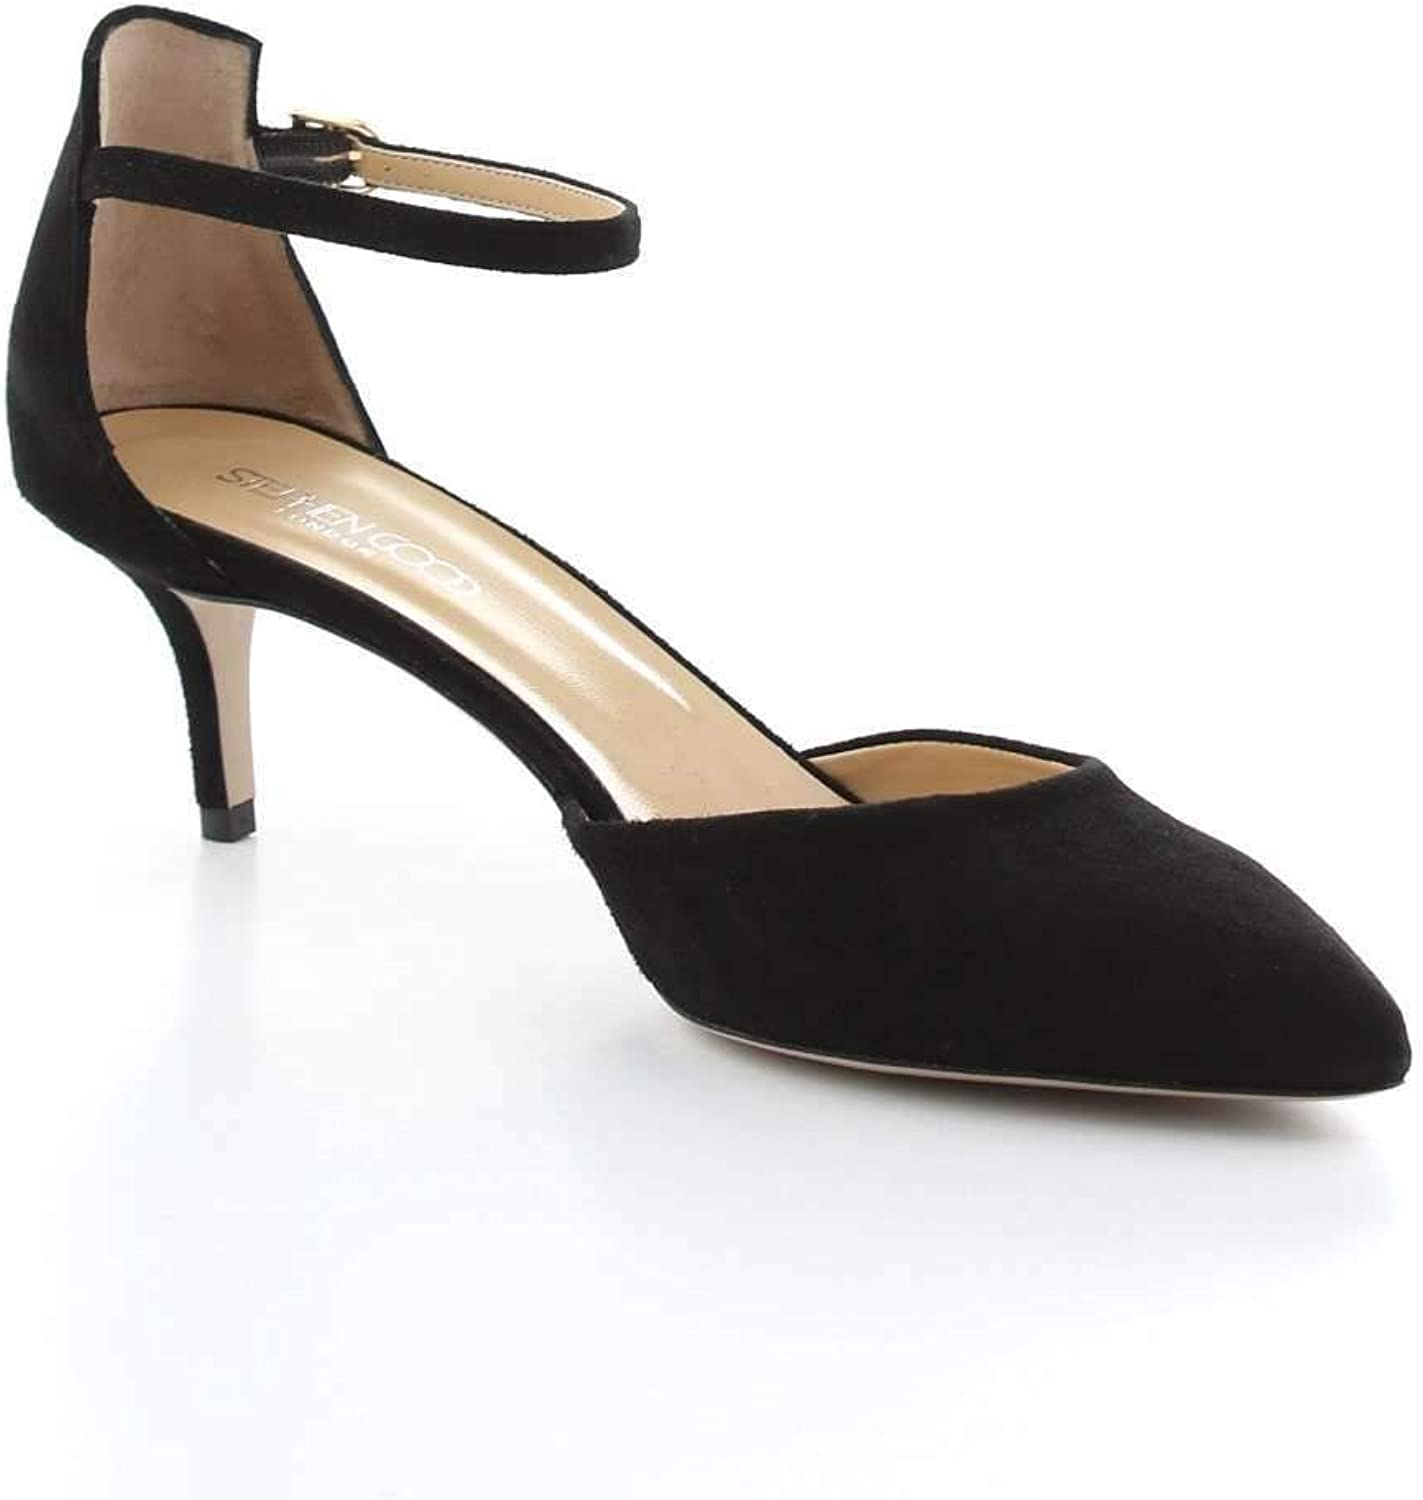 STEPHEN GOOD LONDON Women's 6008BLACK Black Suede Heels